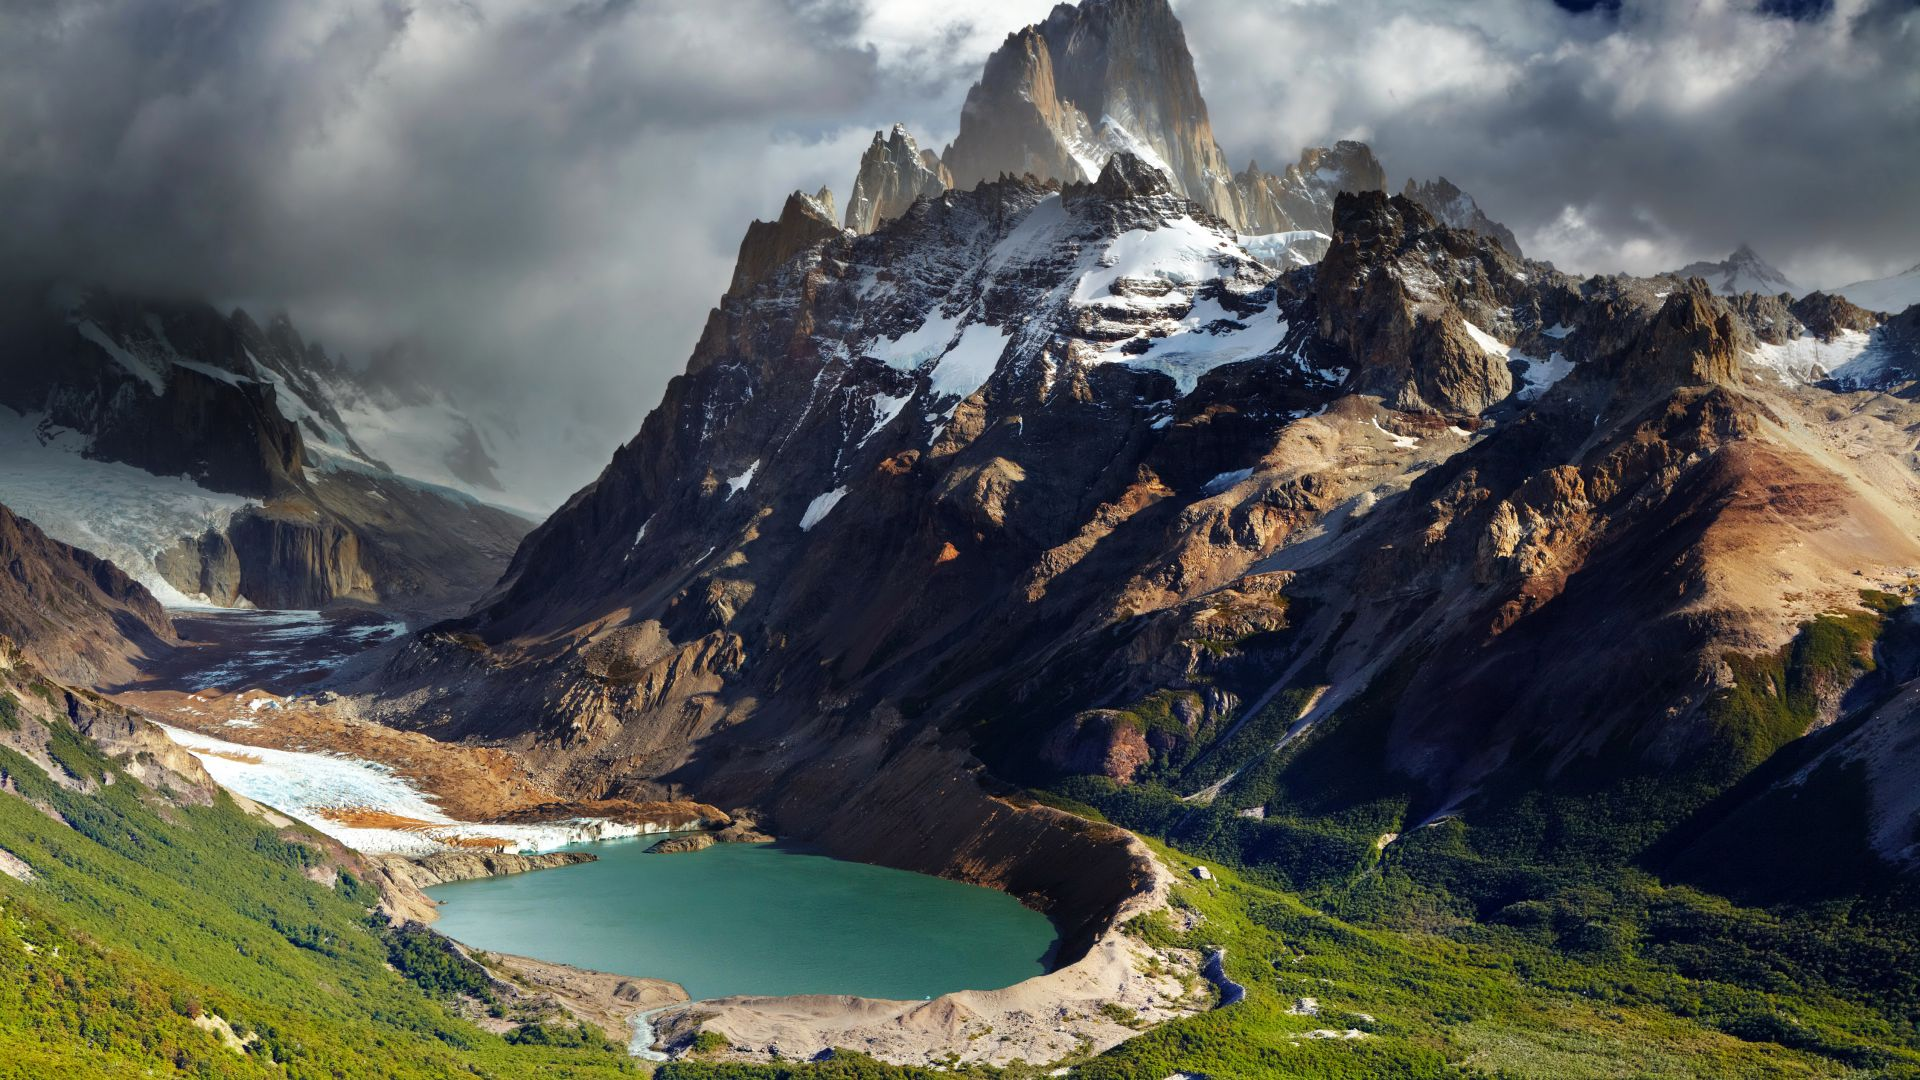 Патагония, Аргентина, горы, озеро, Patagonia, Argentina, mountains, lake